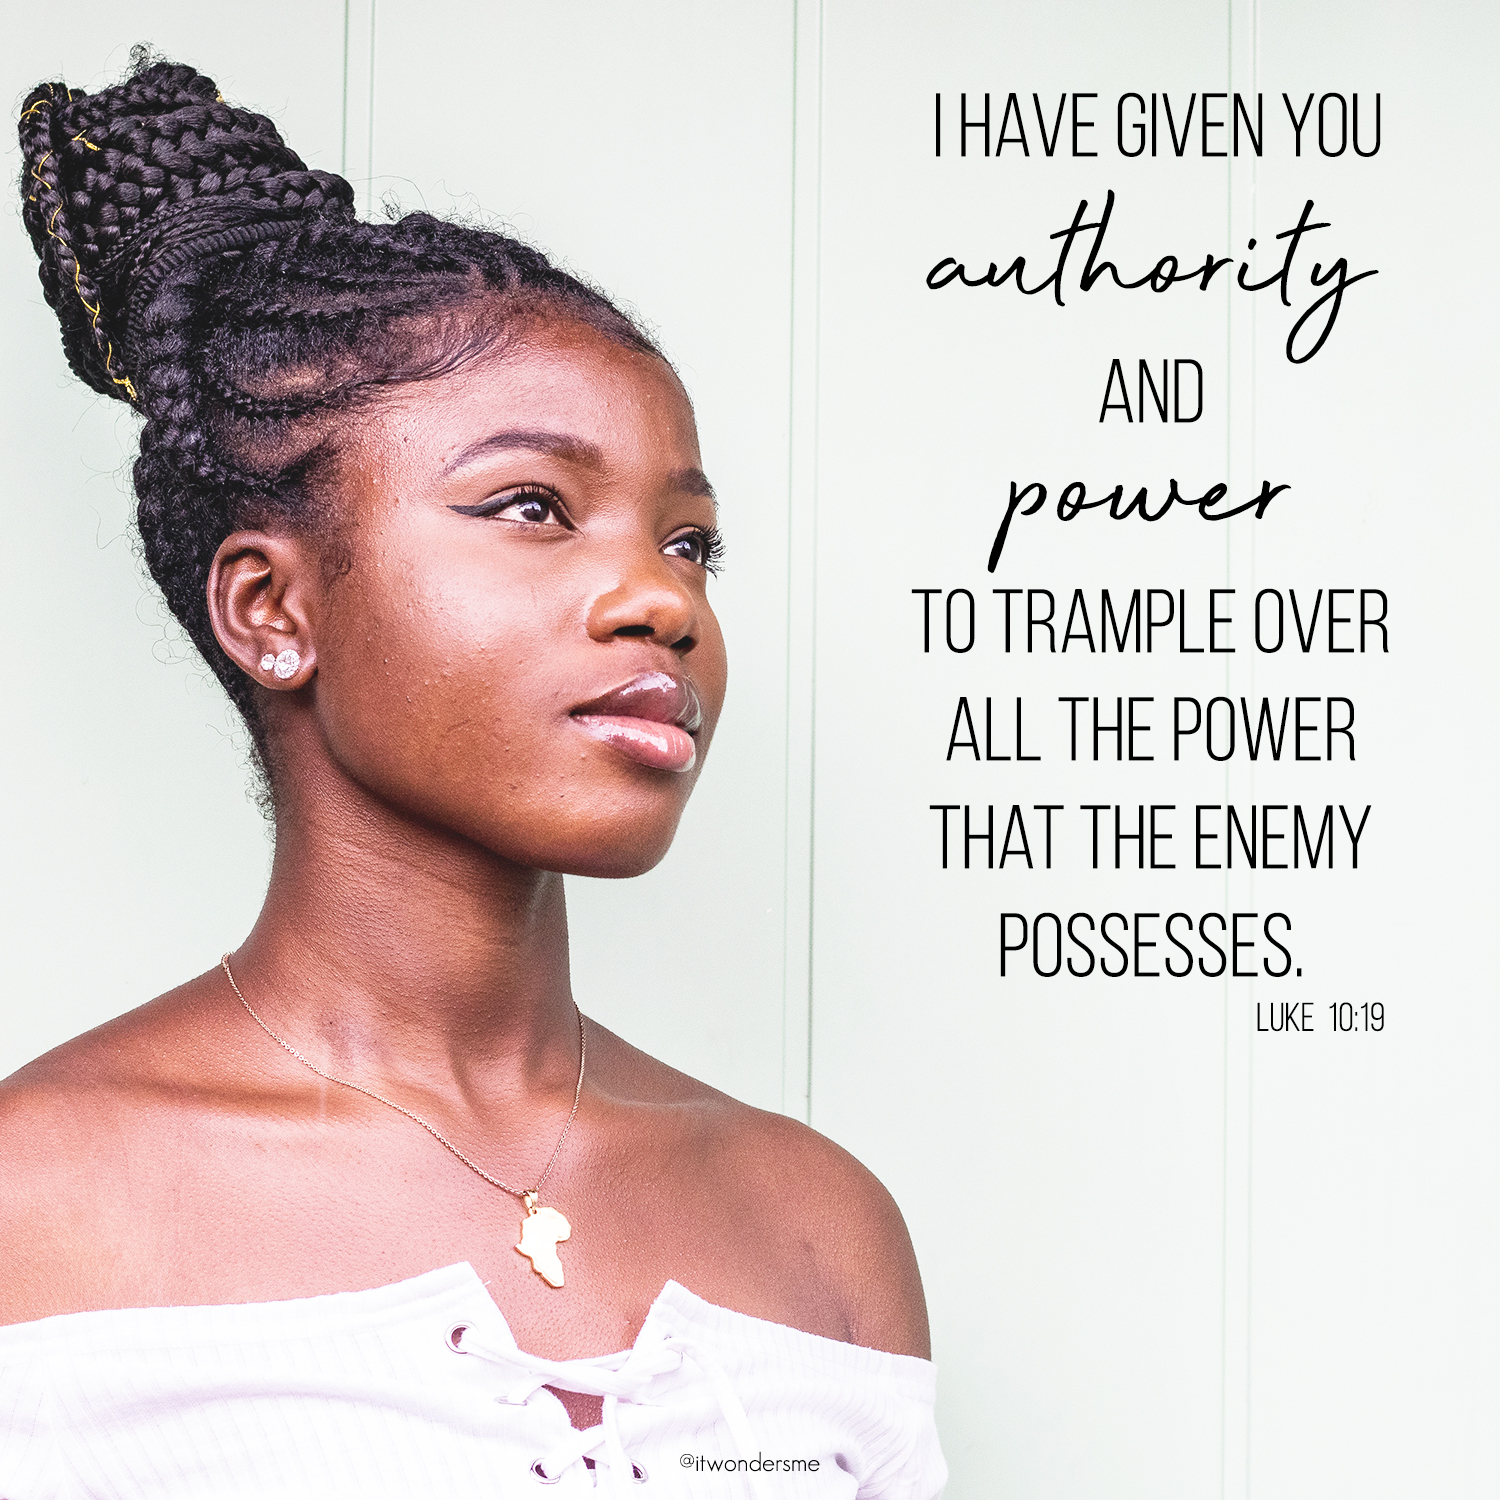 You have authority and power in Jesus